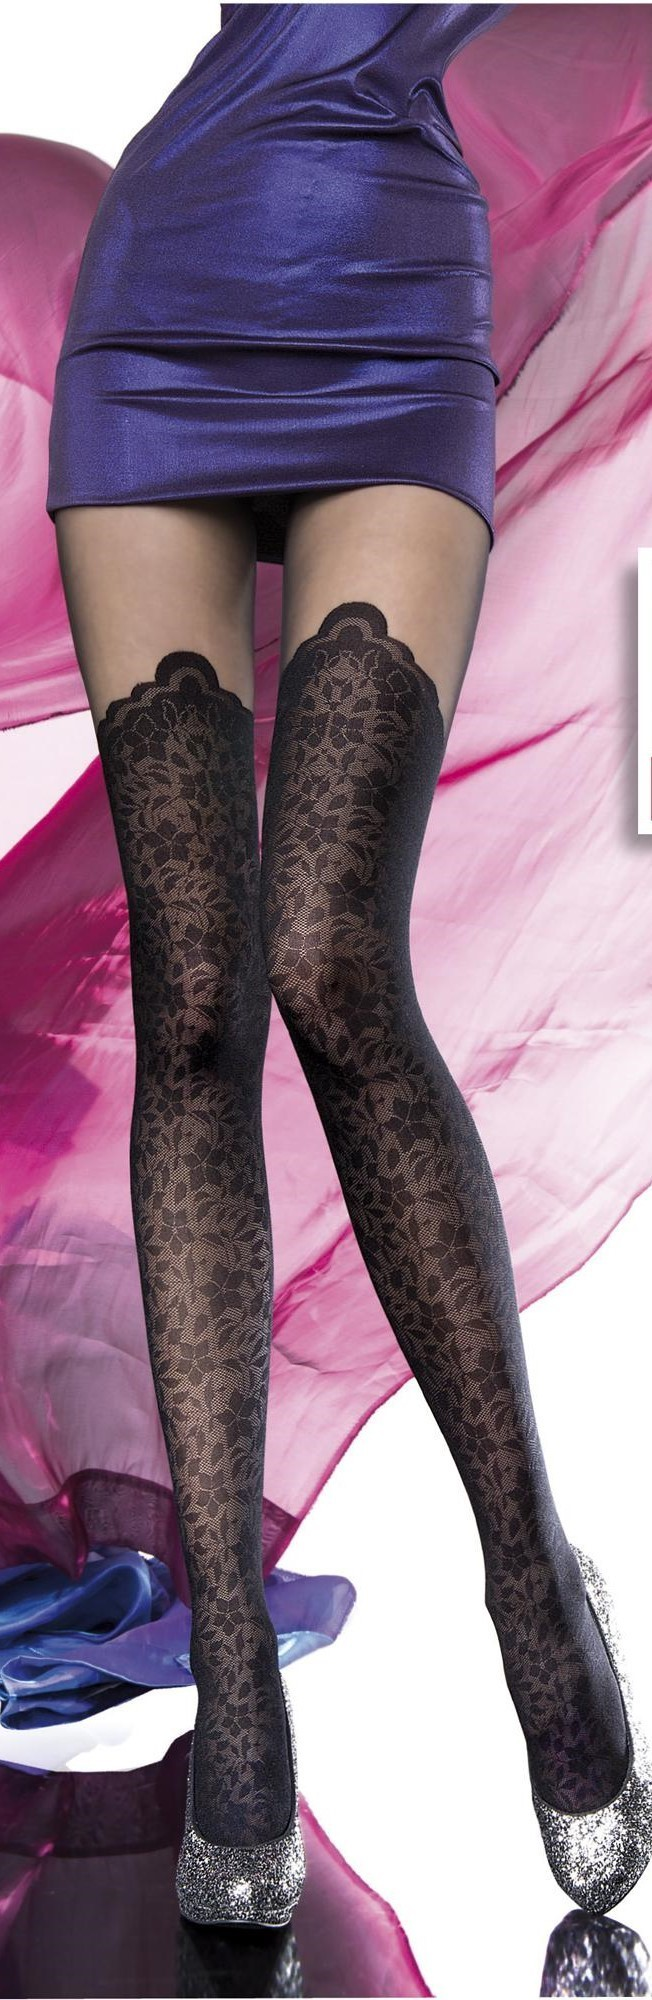 Fiore: Sensual Rose Petal Patterned Tights SOLD OUT FIO_ASITA